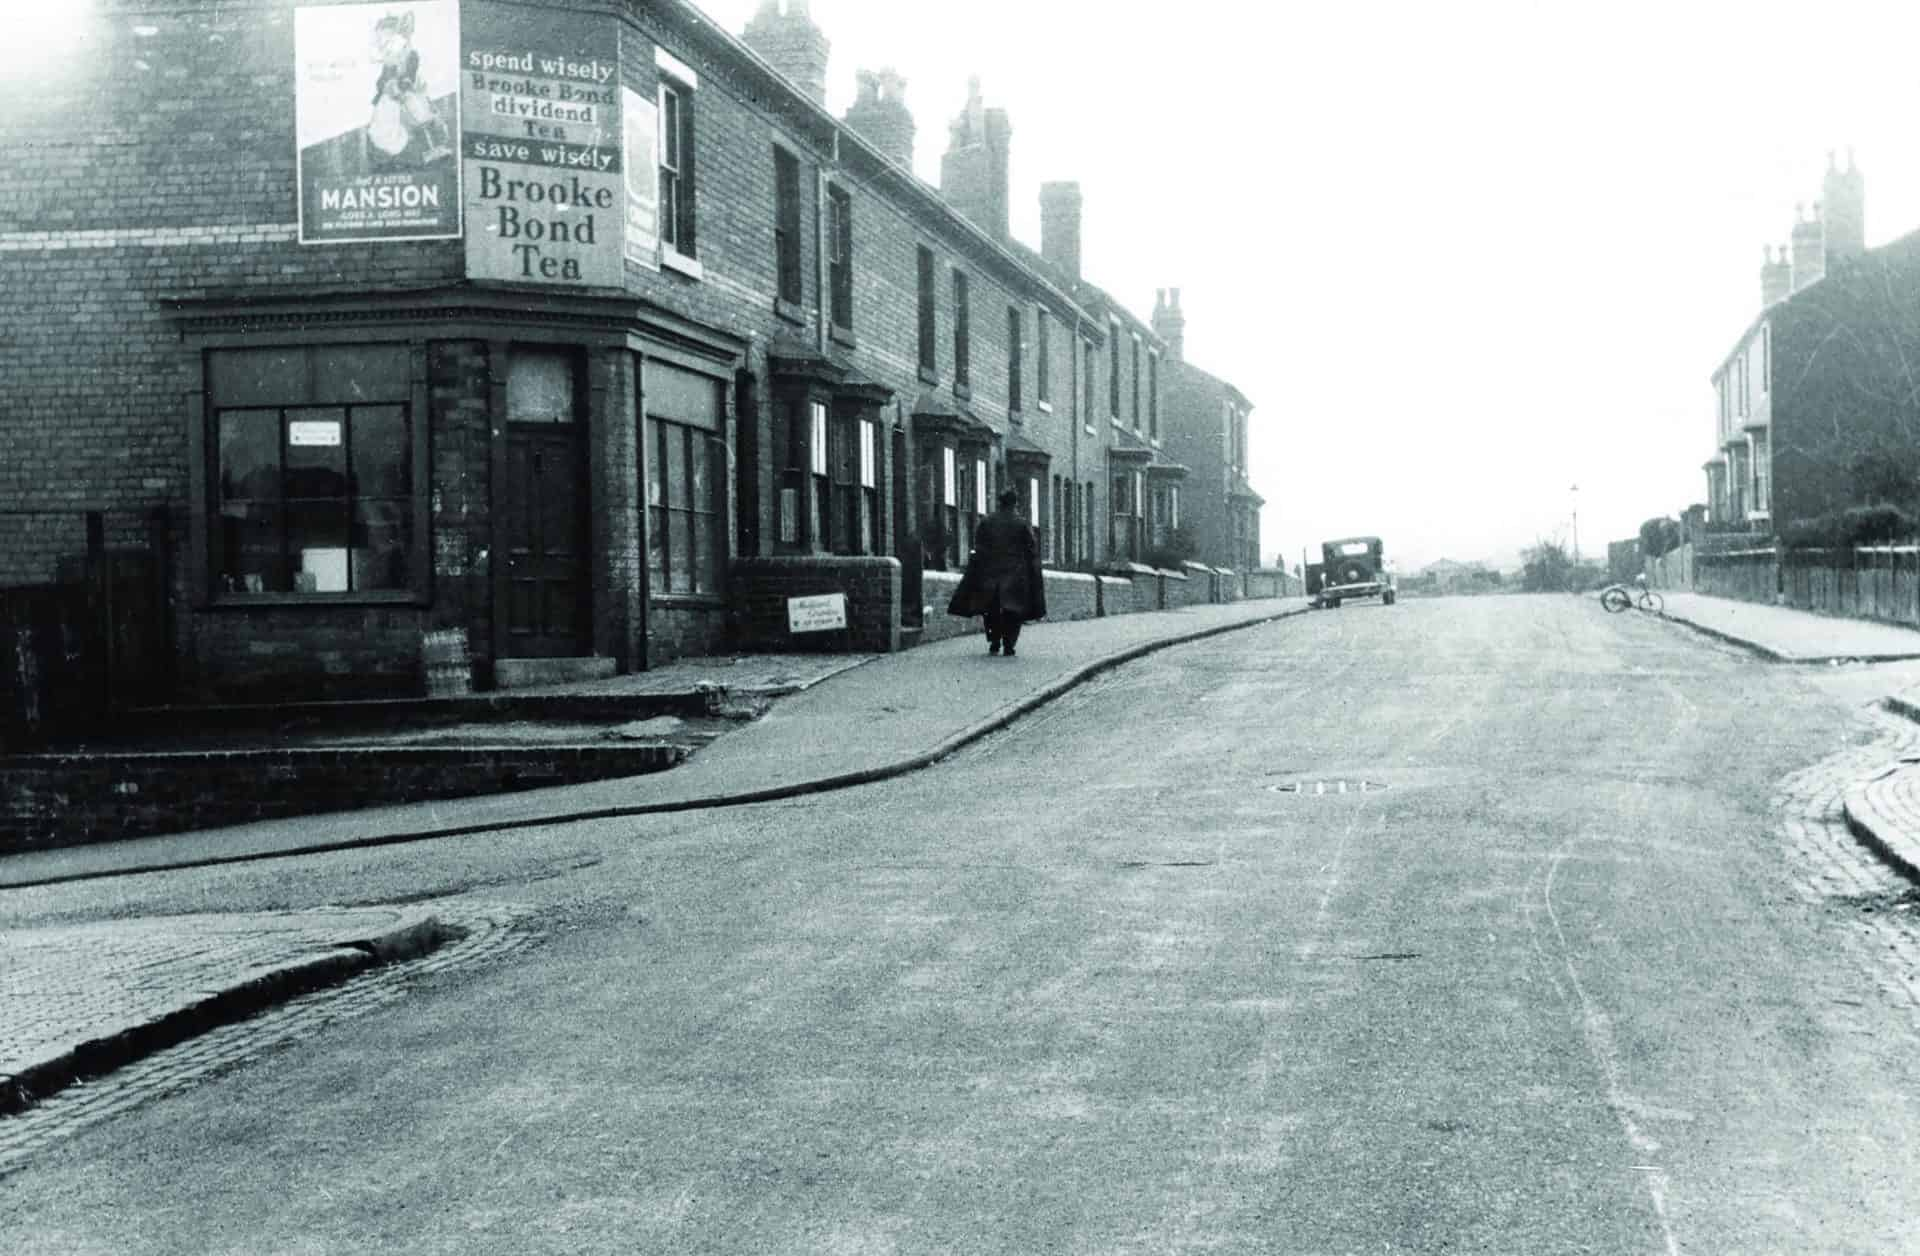 Ford Street, Smethwick, 20th March 1955  Photographer: Thomas A James